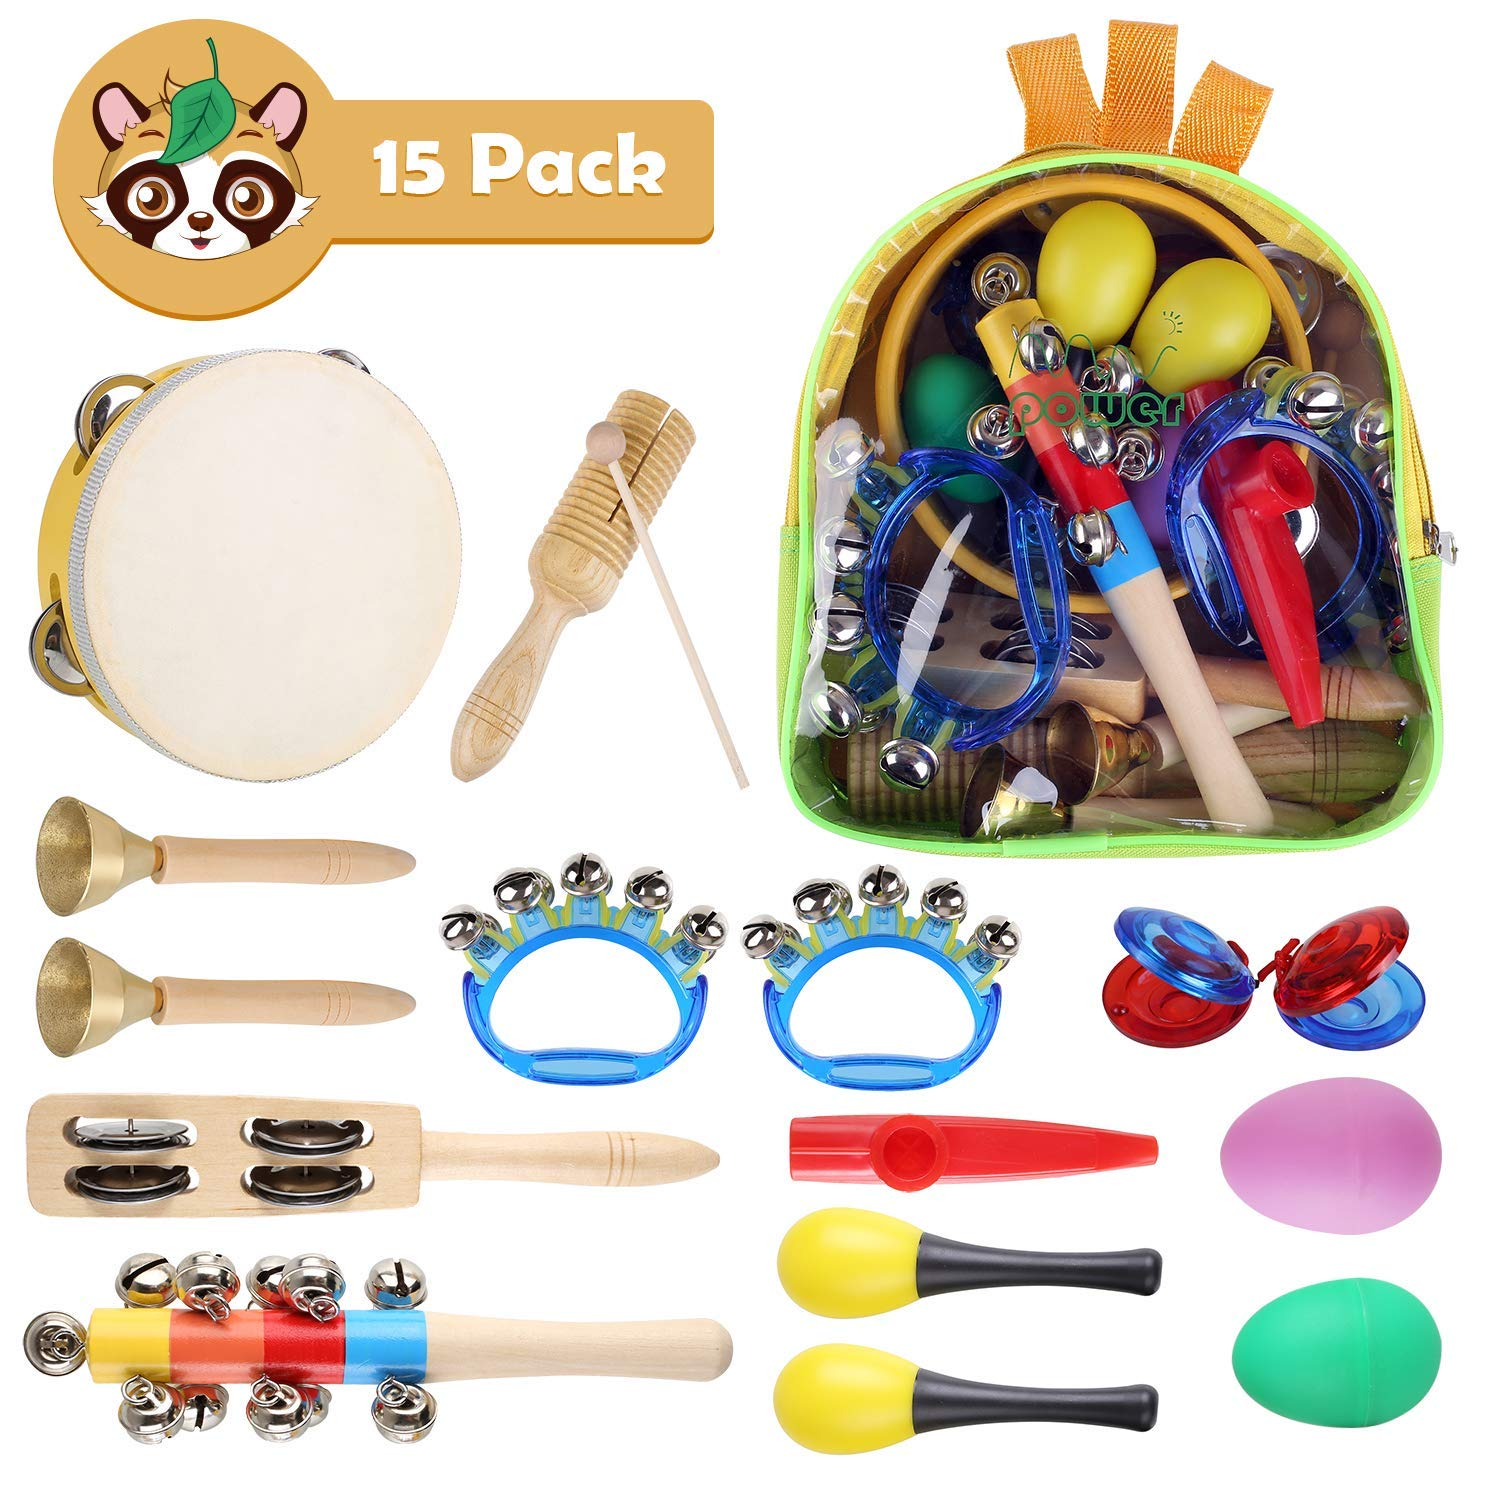 MVPower Kids Musical Instruments Set -15 Pcs Children Instruments Set Early Learning Music Toy with Tambourine, Bell Stick, Maraca, Flute, Egg Shaker, Triangle, Finger Clapper, Tone Blocks with Bag